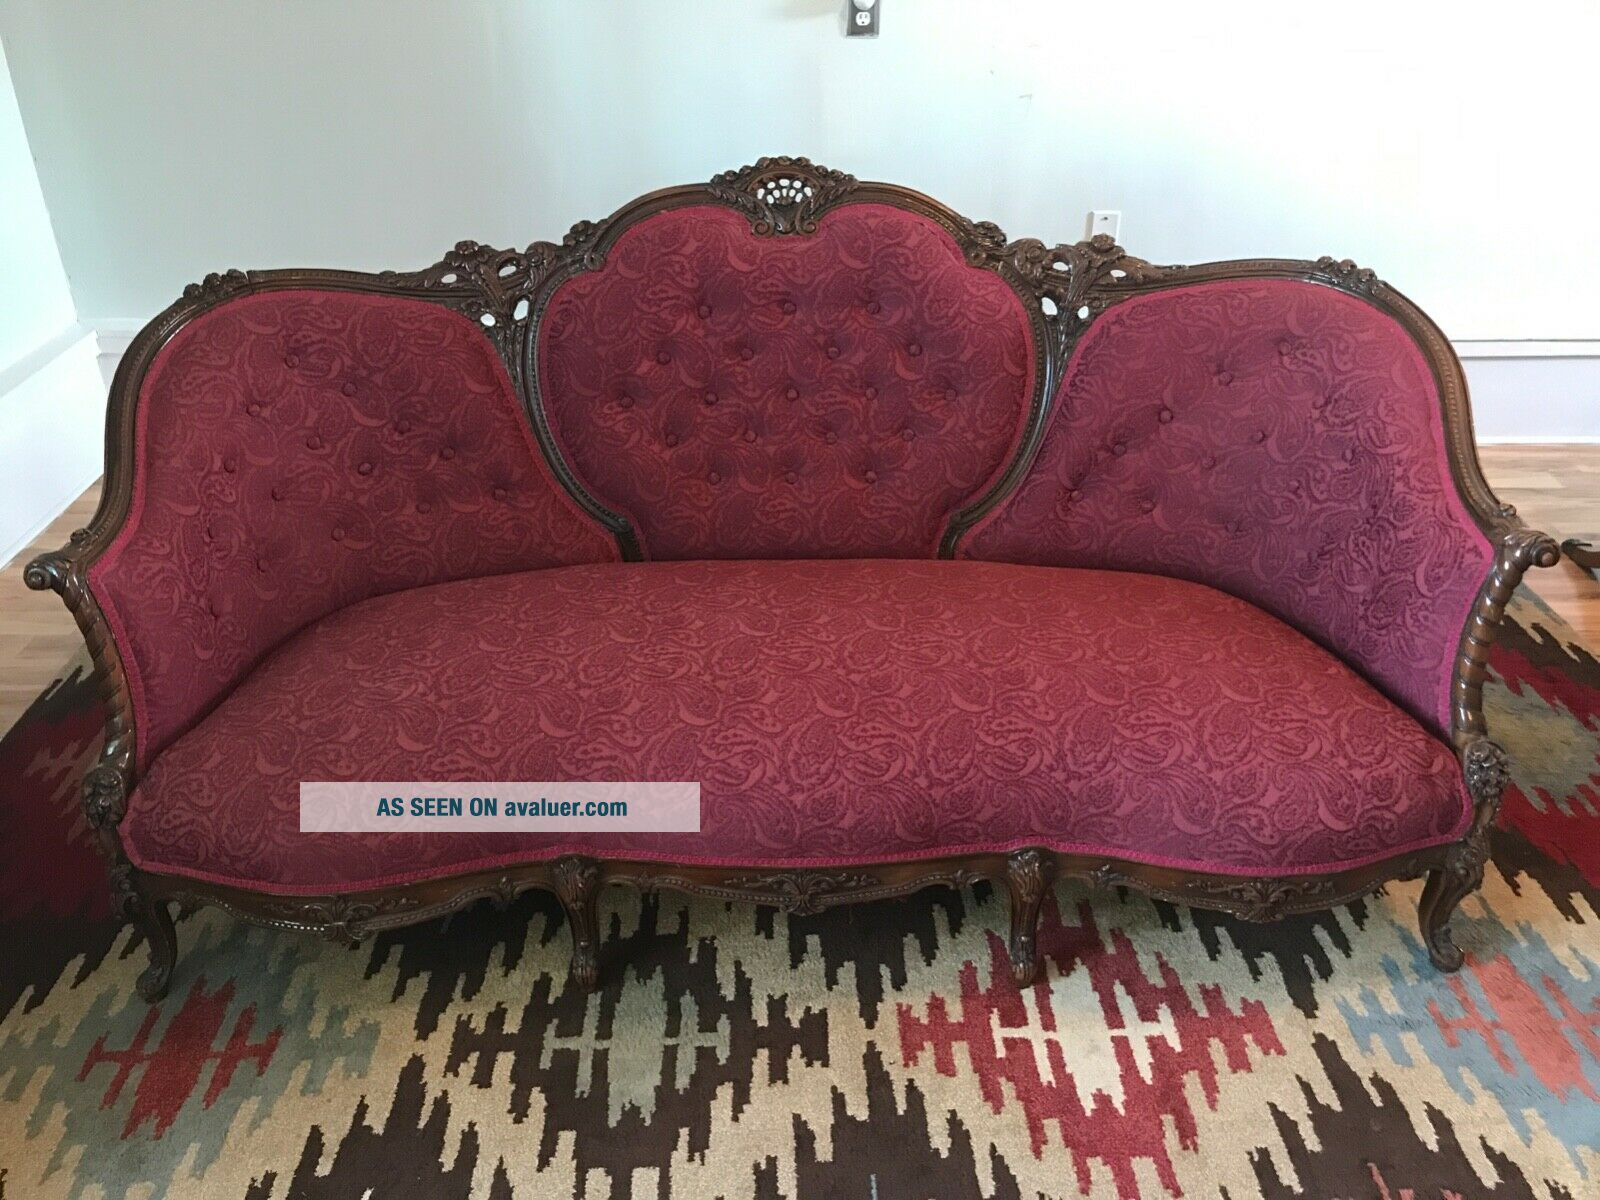 Antique Victorian red couch and chair reupholstered and wood refinished